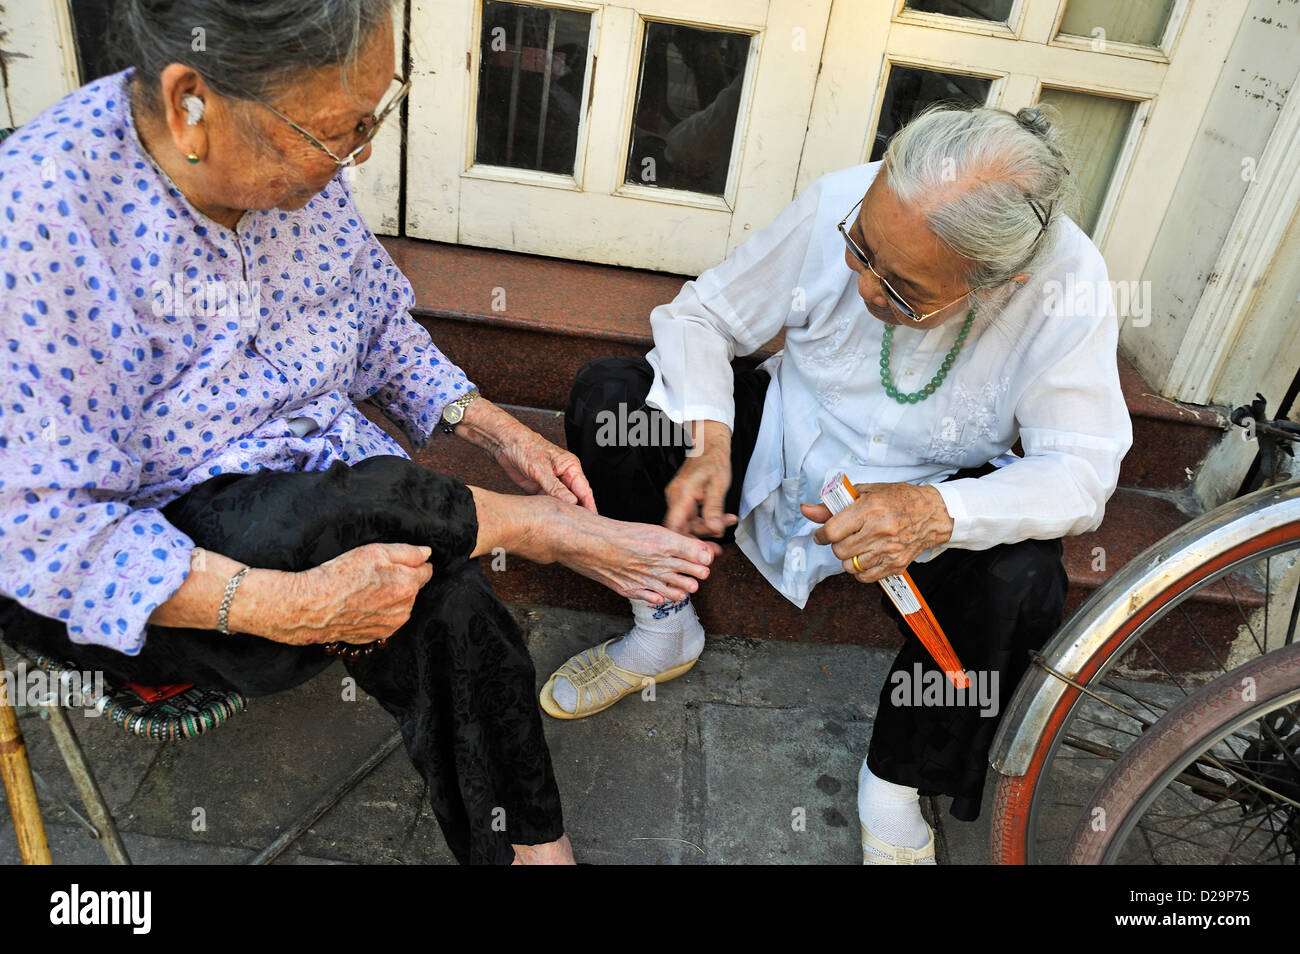 Woman having her feet treated by another old woman, Hanoi, Vietnam - Stock Image